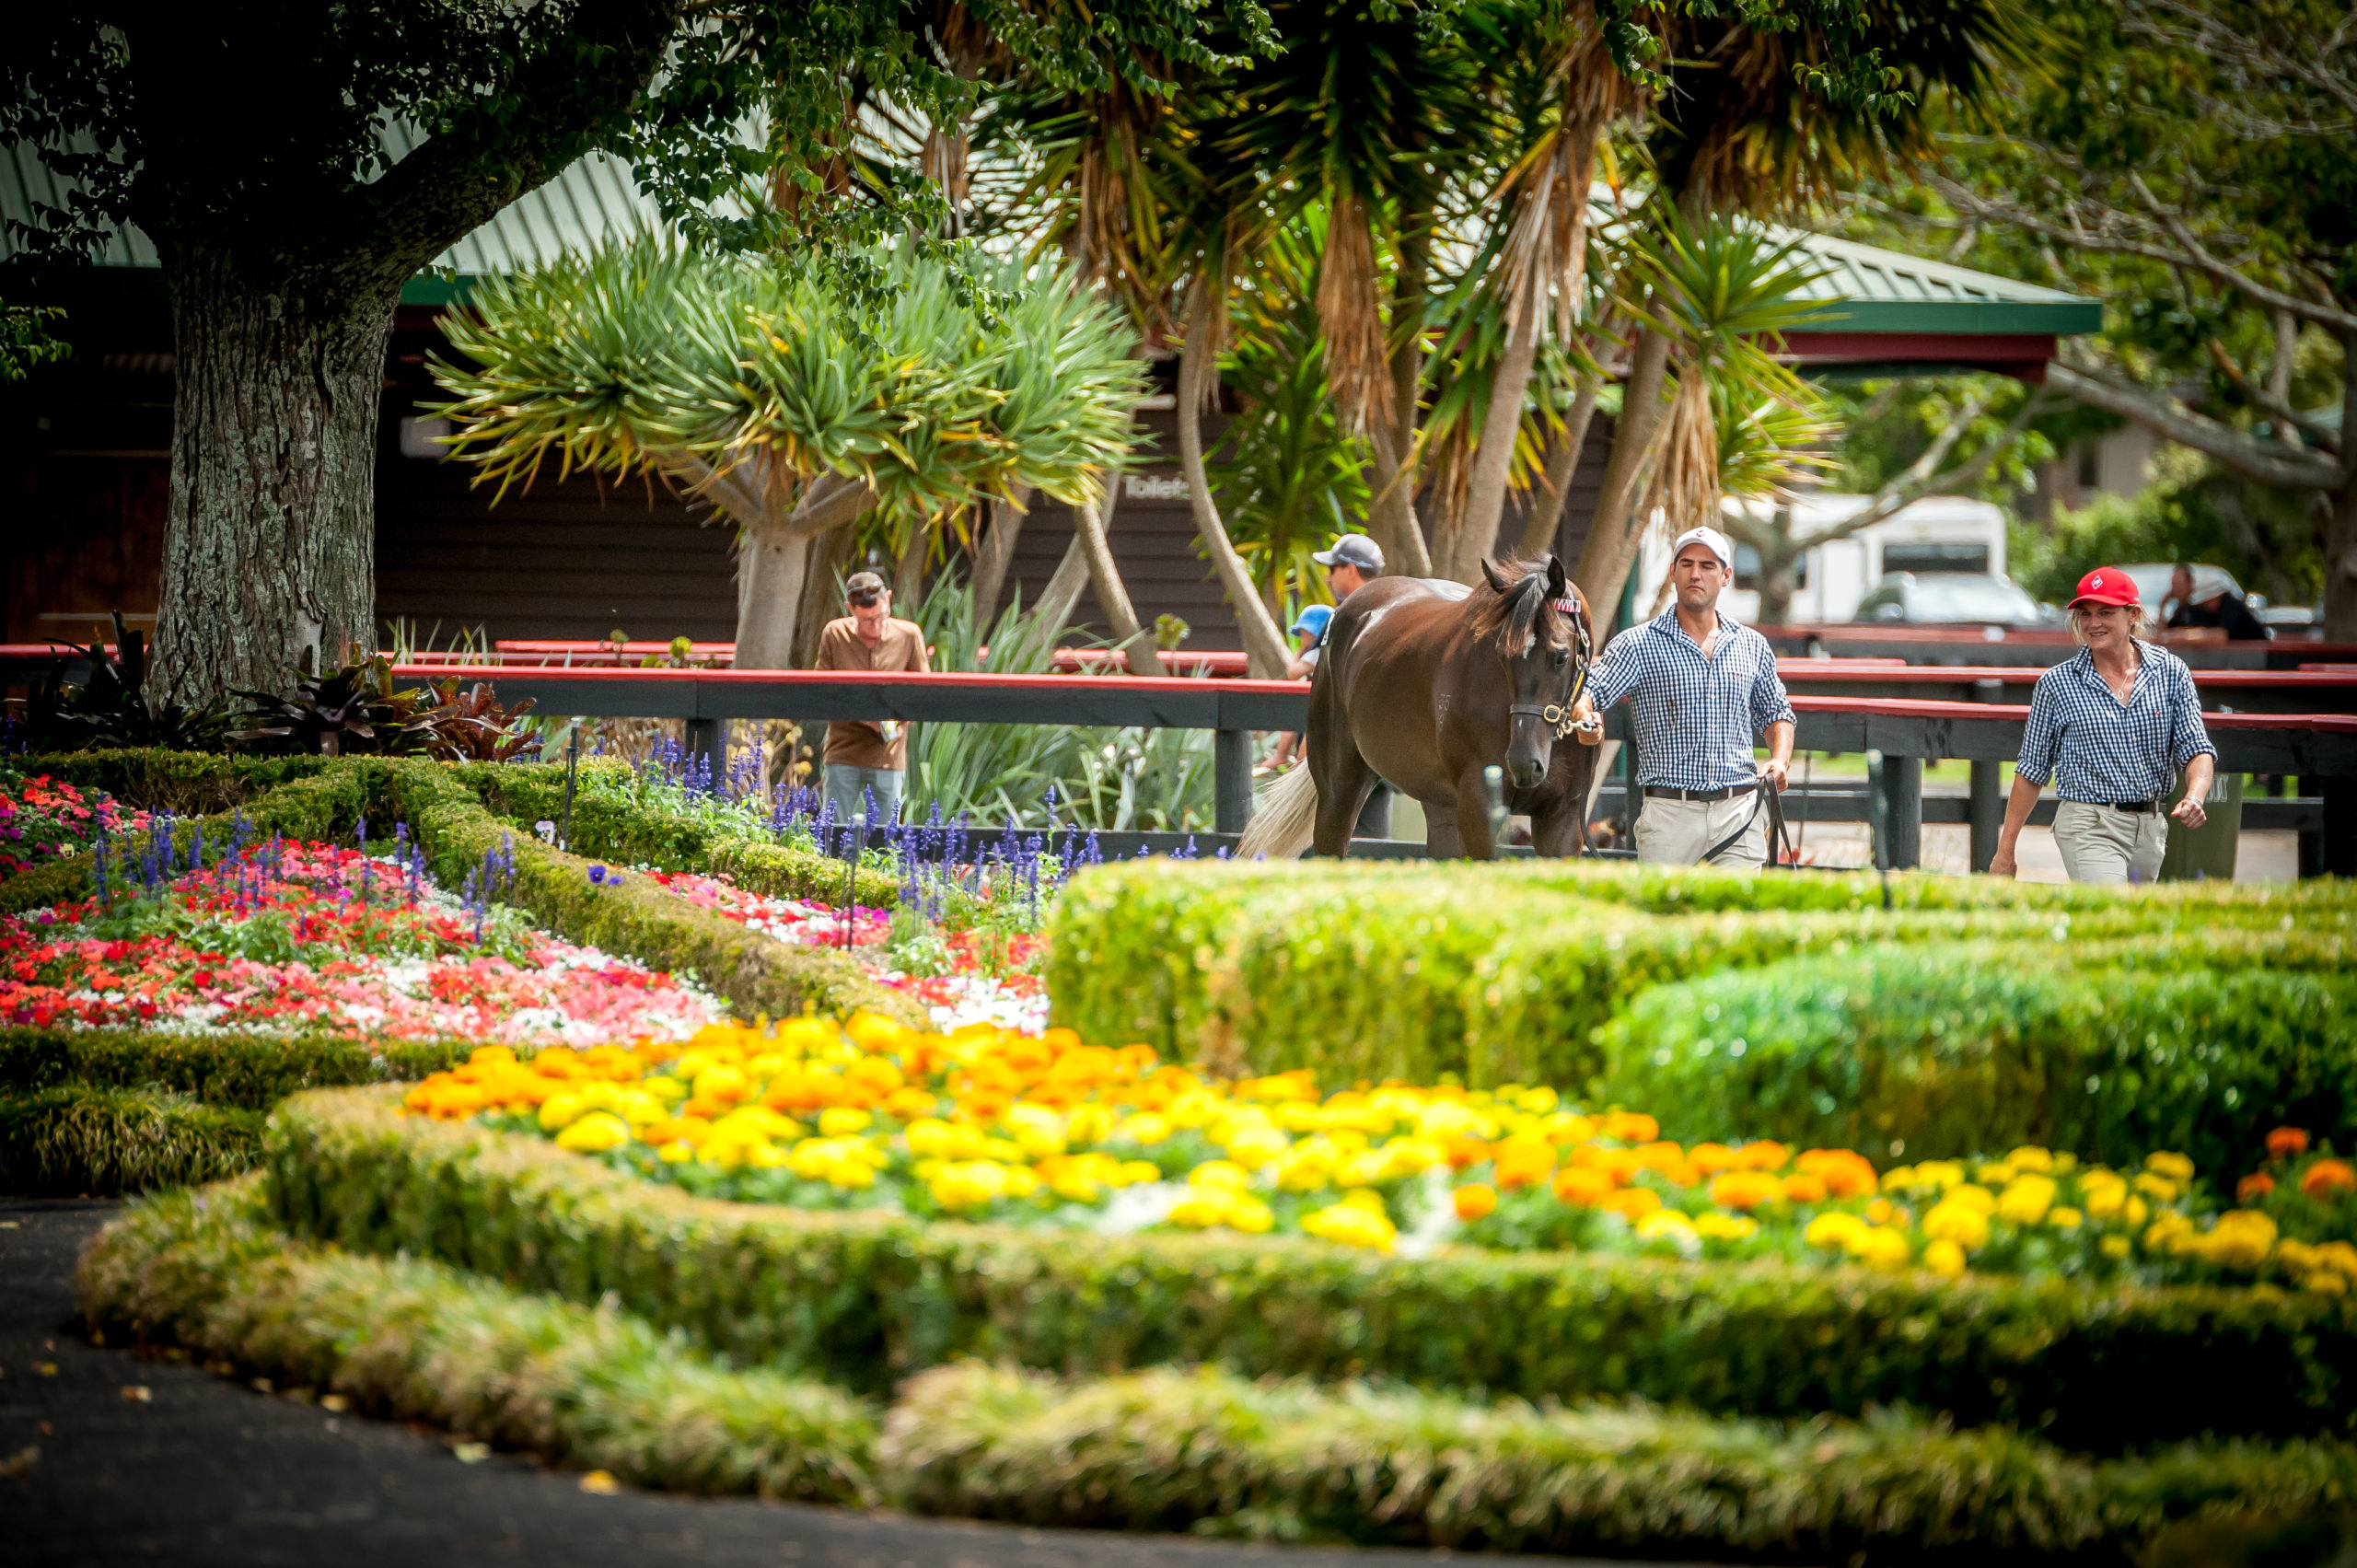 Valachi Downs - Misc - Outdoor Parade Ring Gardens